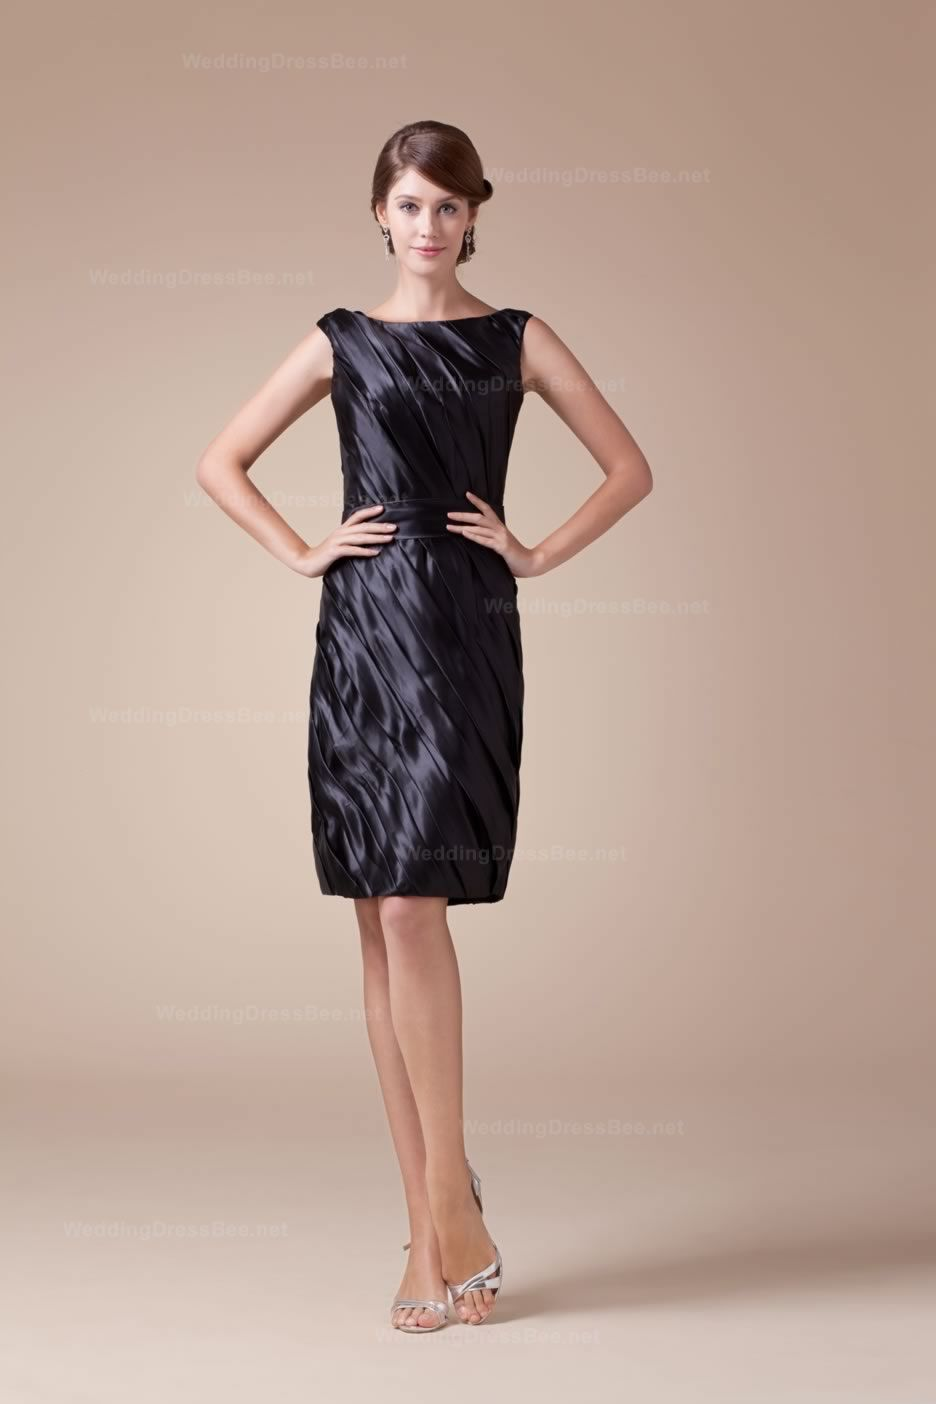 Cocktail dresses for wedding reception  Its great  Wedding Party  Pinterest  Elastic satin Ruffles and Satin